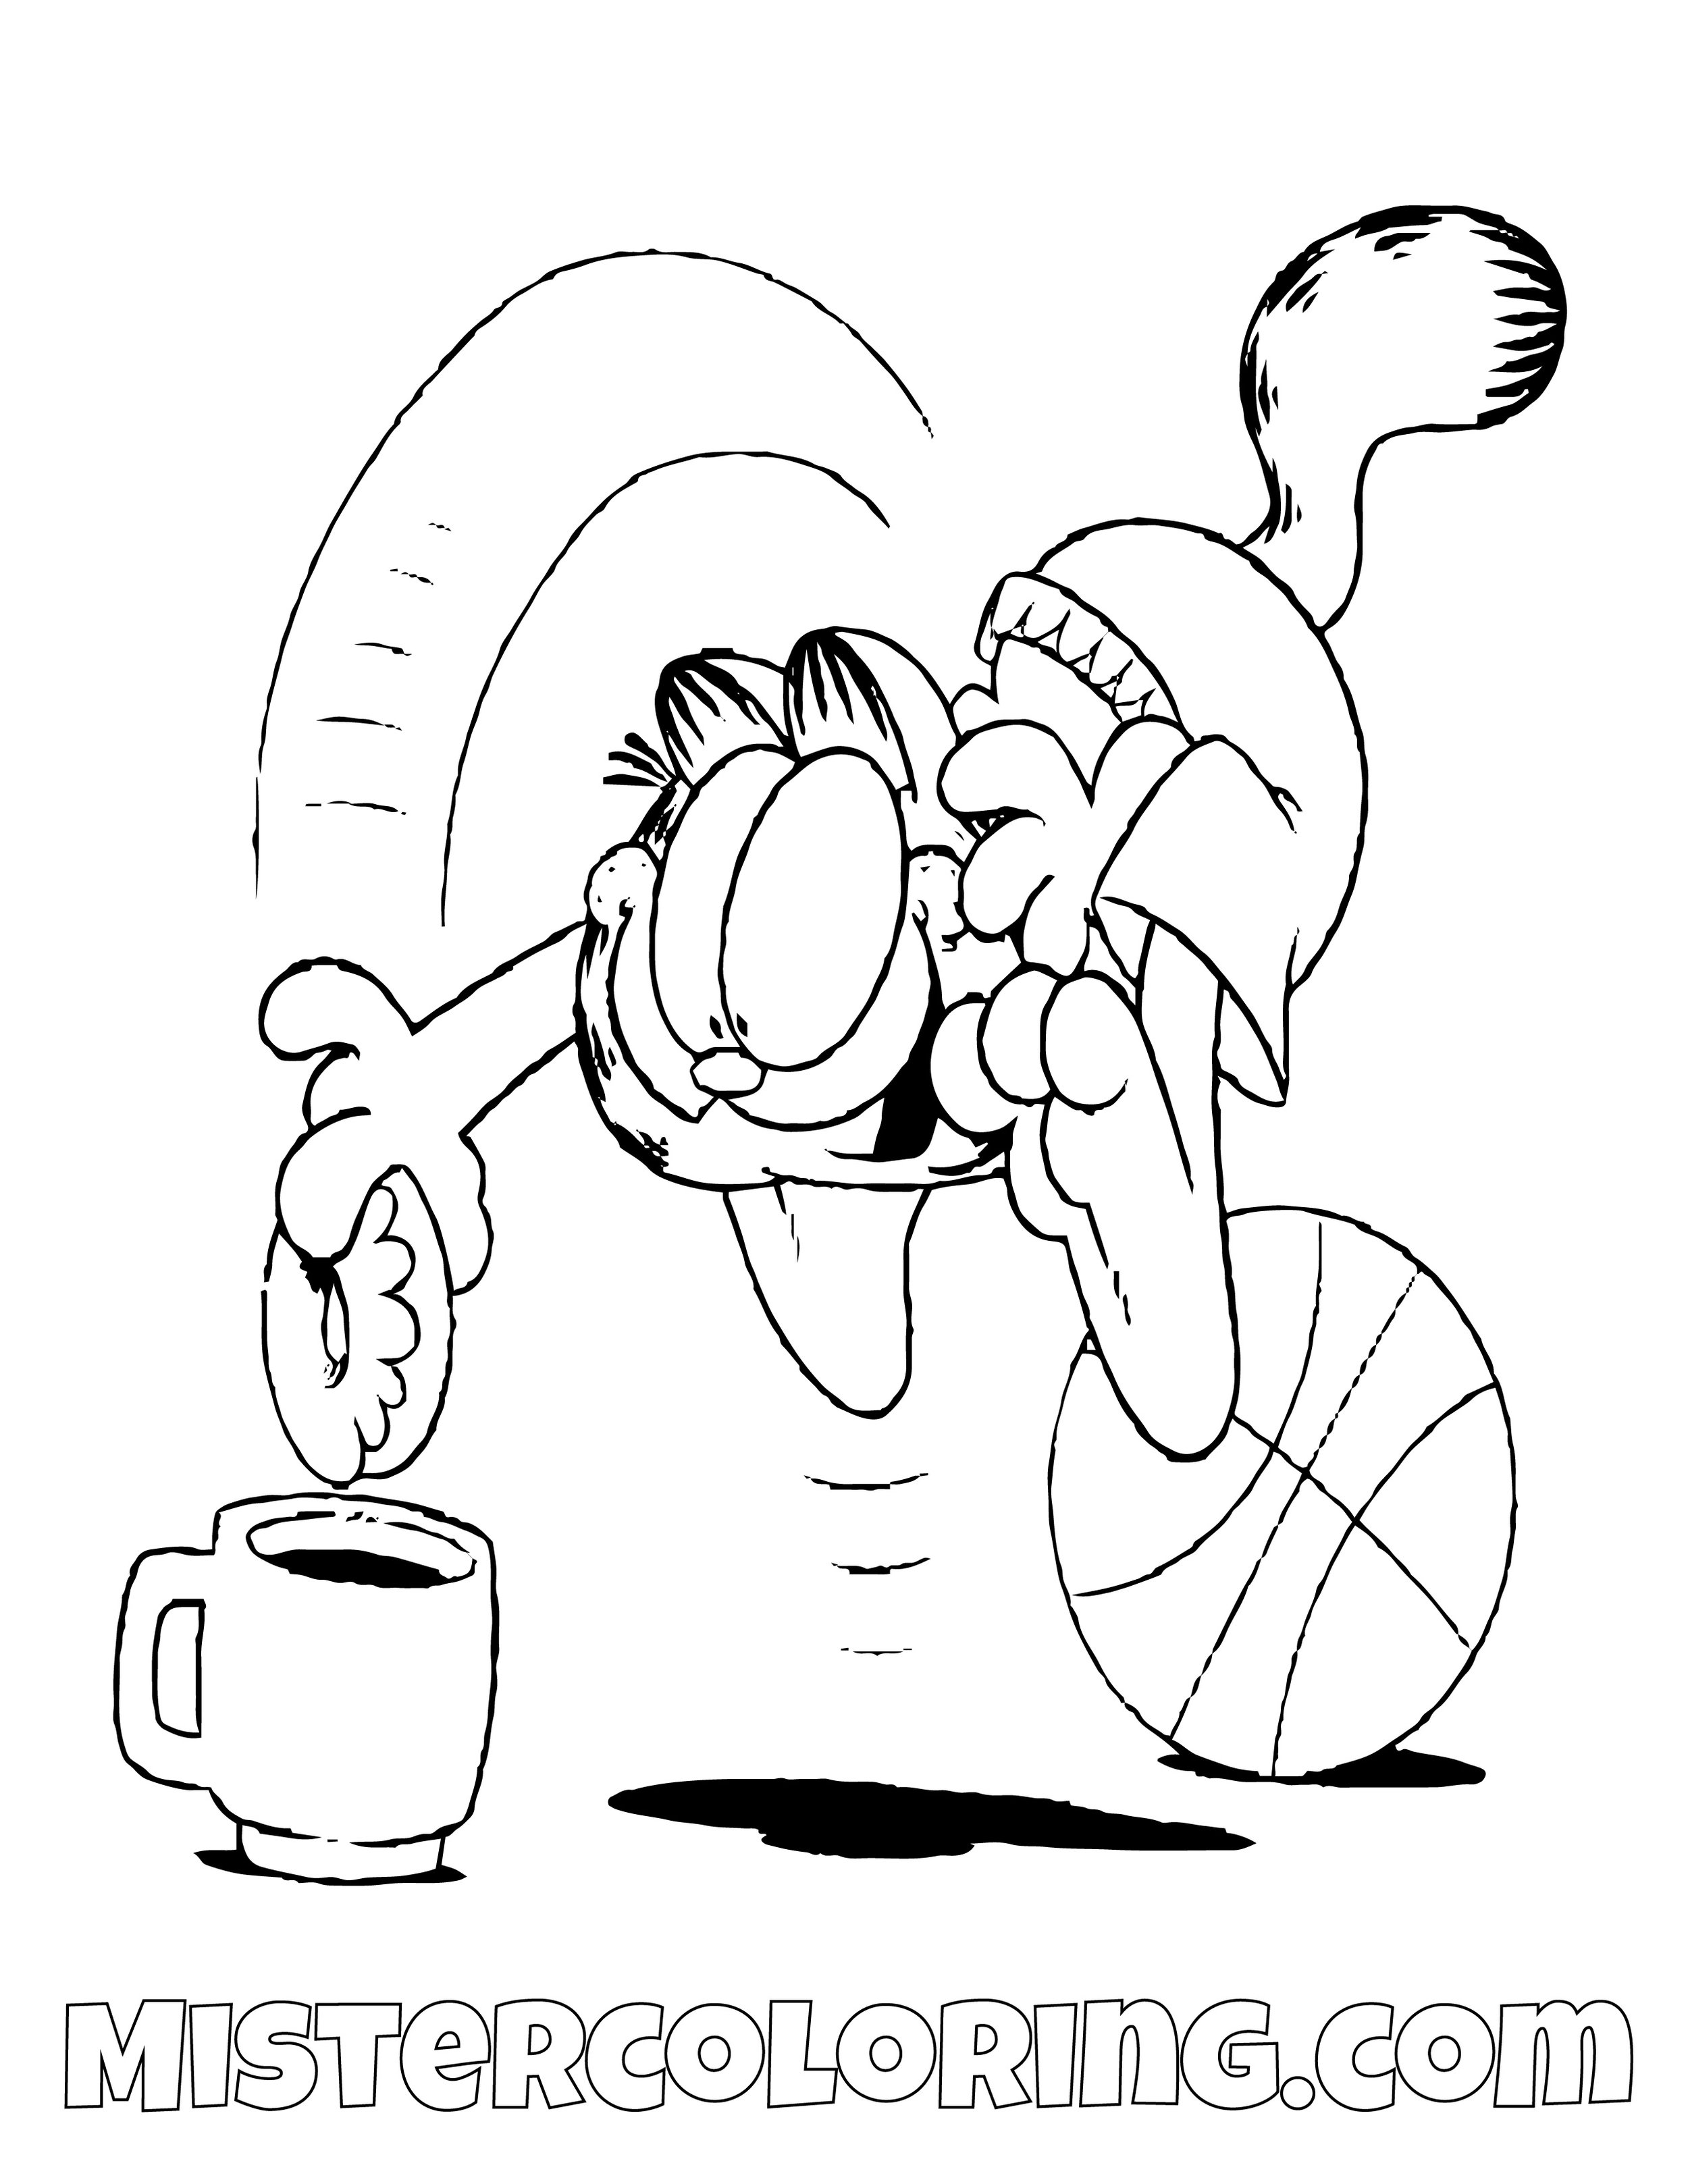 Garfield Dipping A Donut Coloring Page